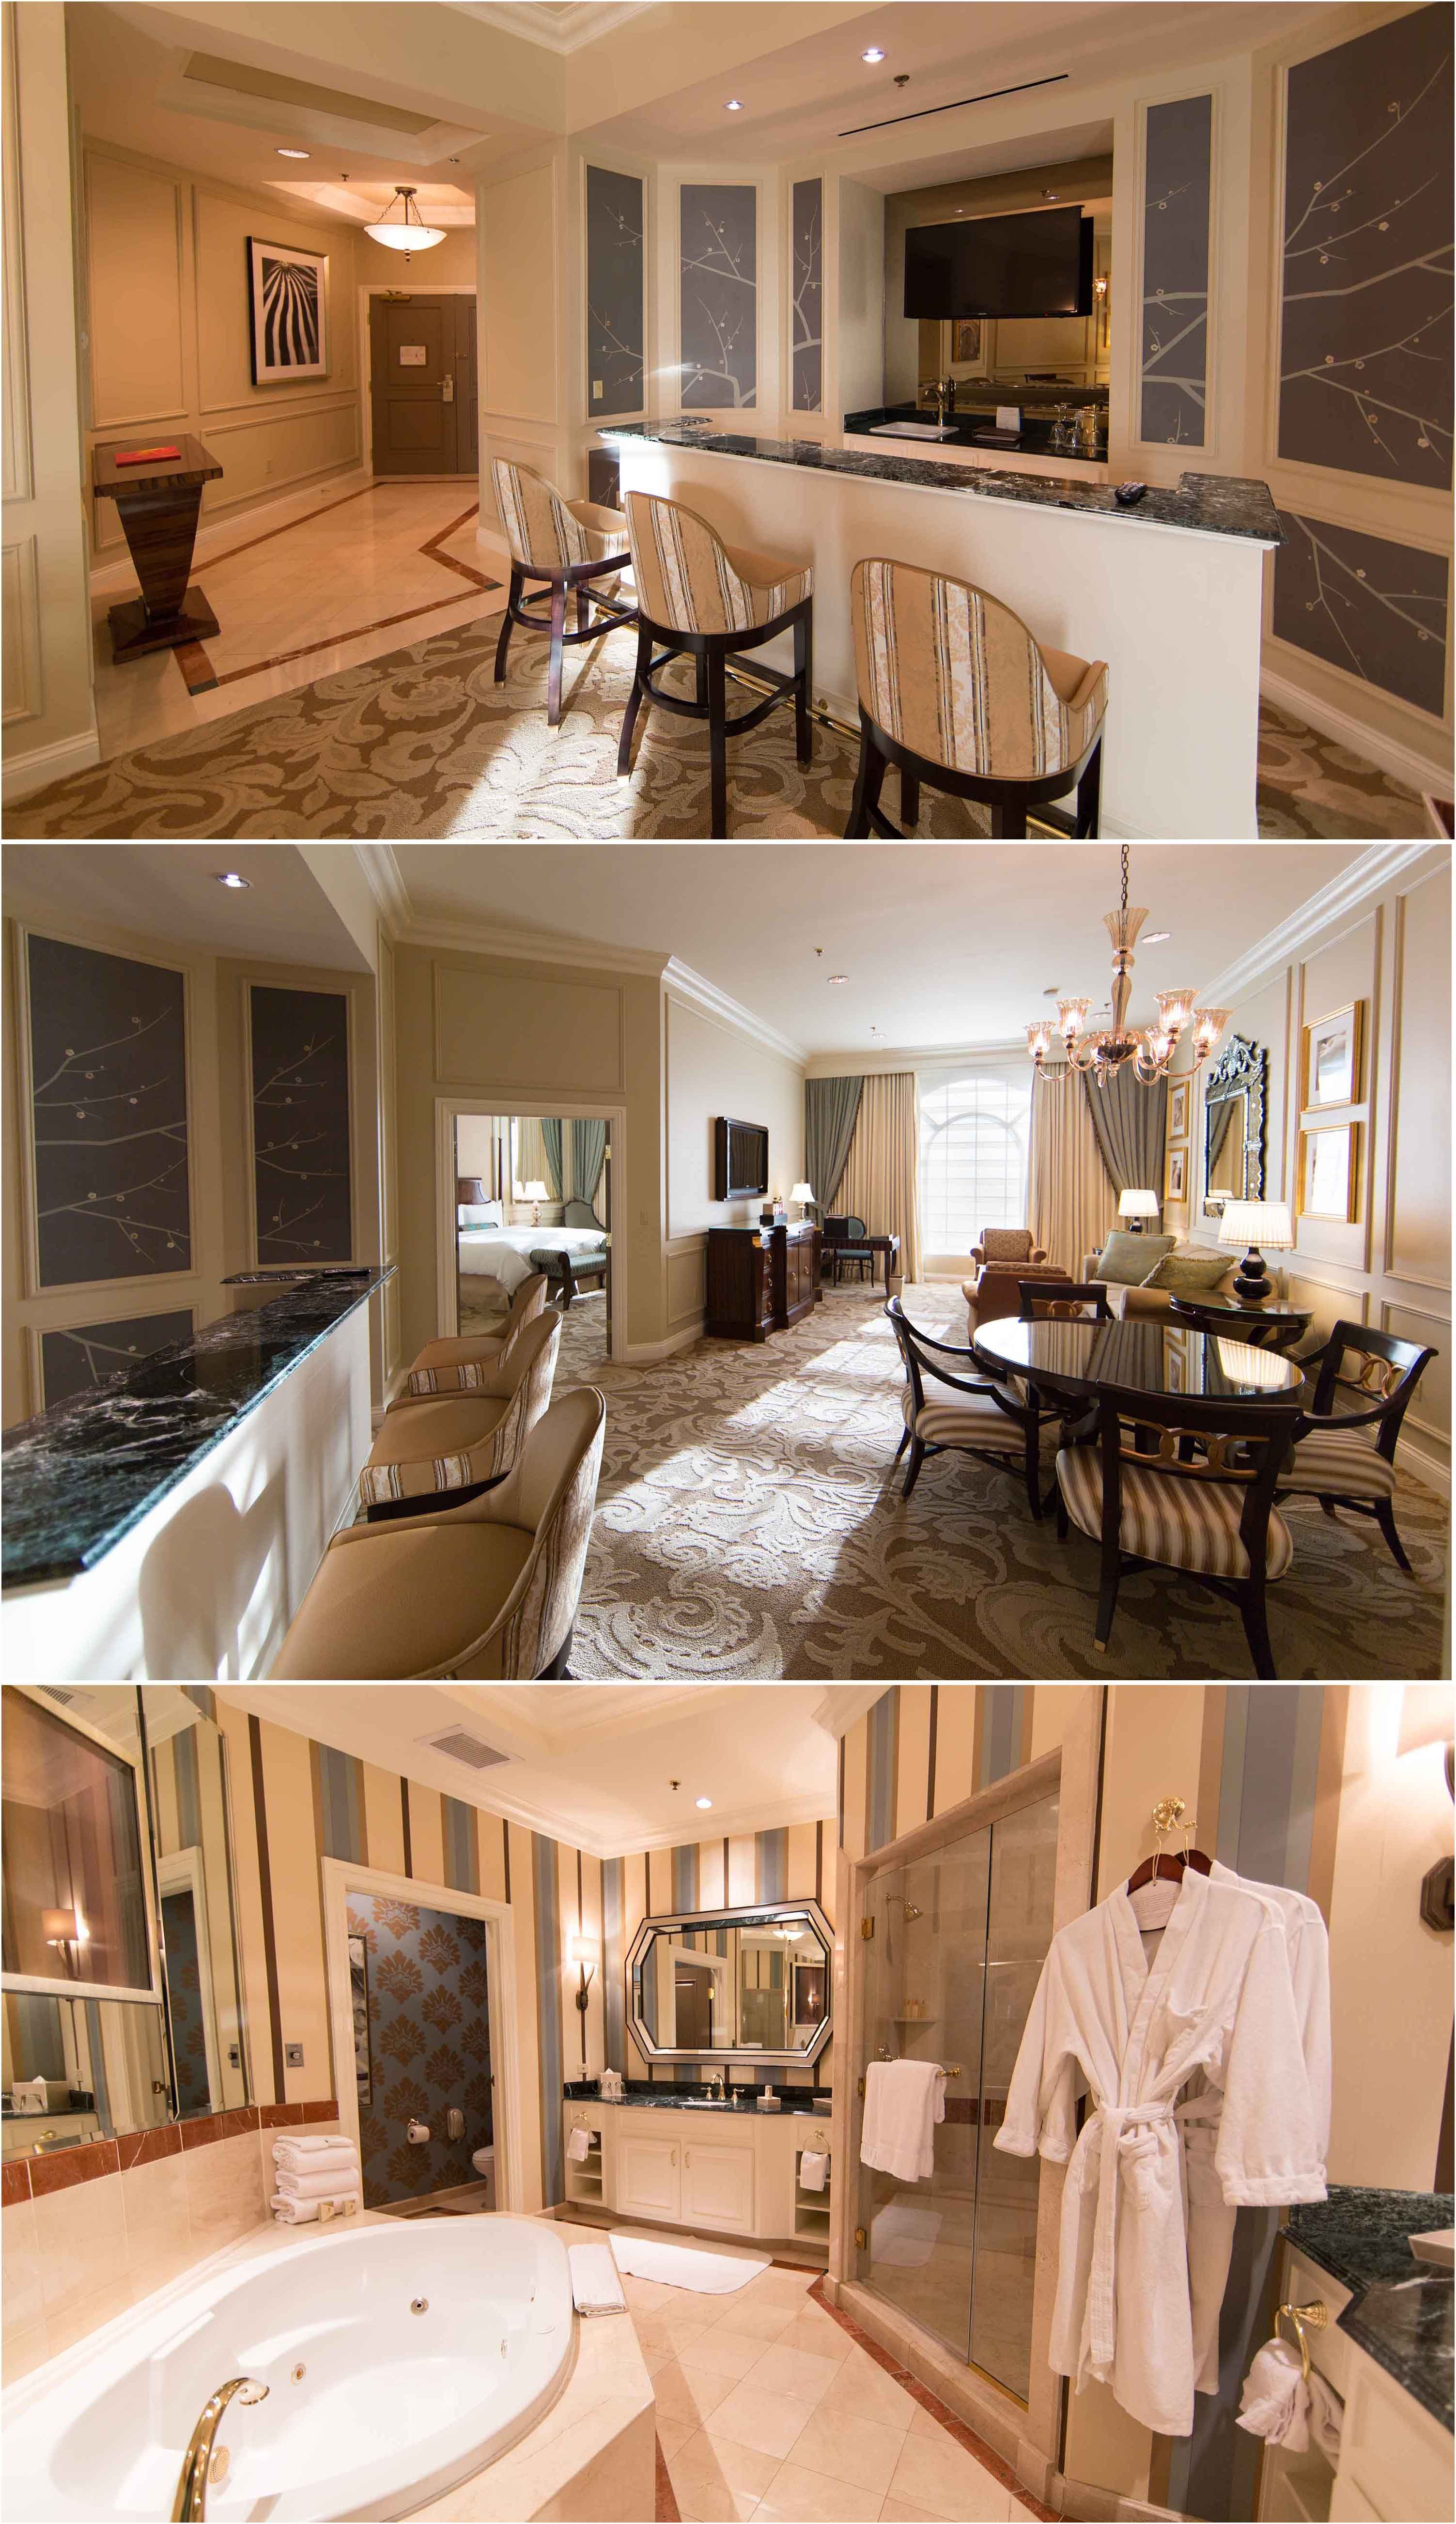 1500 Square Foot Prima Suite At Venetian Is Priced From 350 A